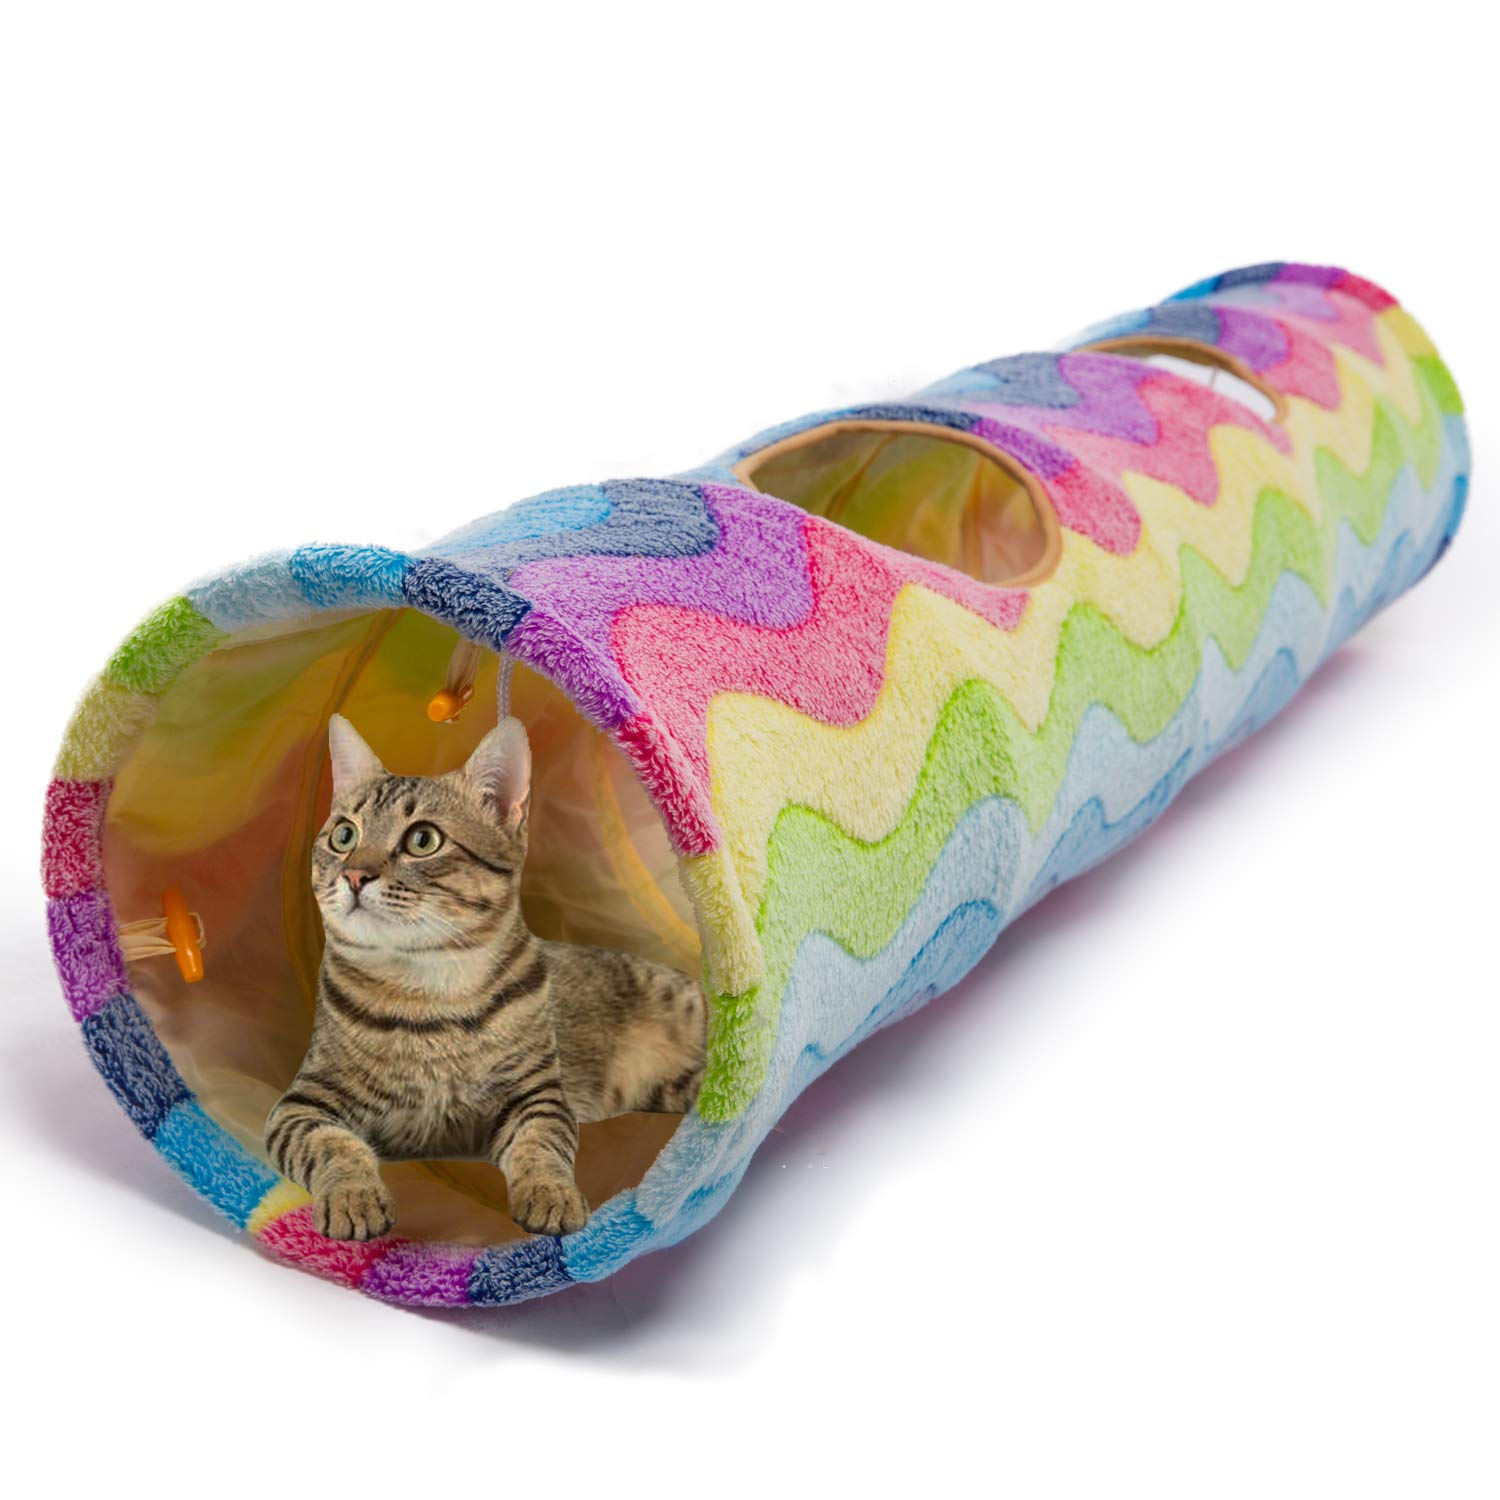 Luckitty Large Cat Toys Collapsible Tunnel Tube with Plush Balls, for Small Pets Bunny Rabbits, Kittens, Ferrets,Puppy and Dogs,Rainbow Color by Luckitty